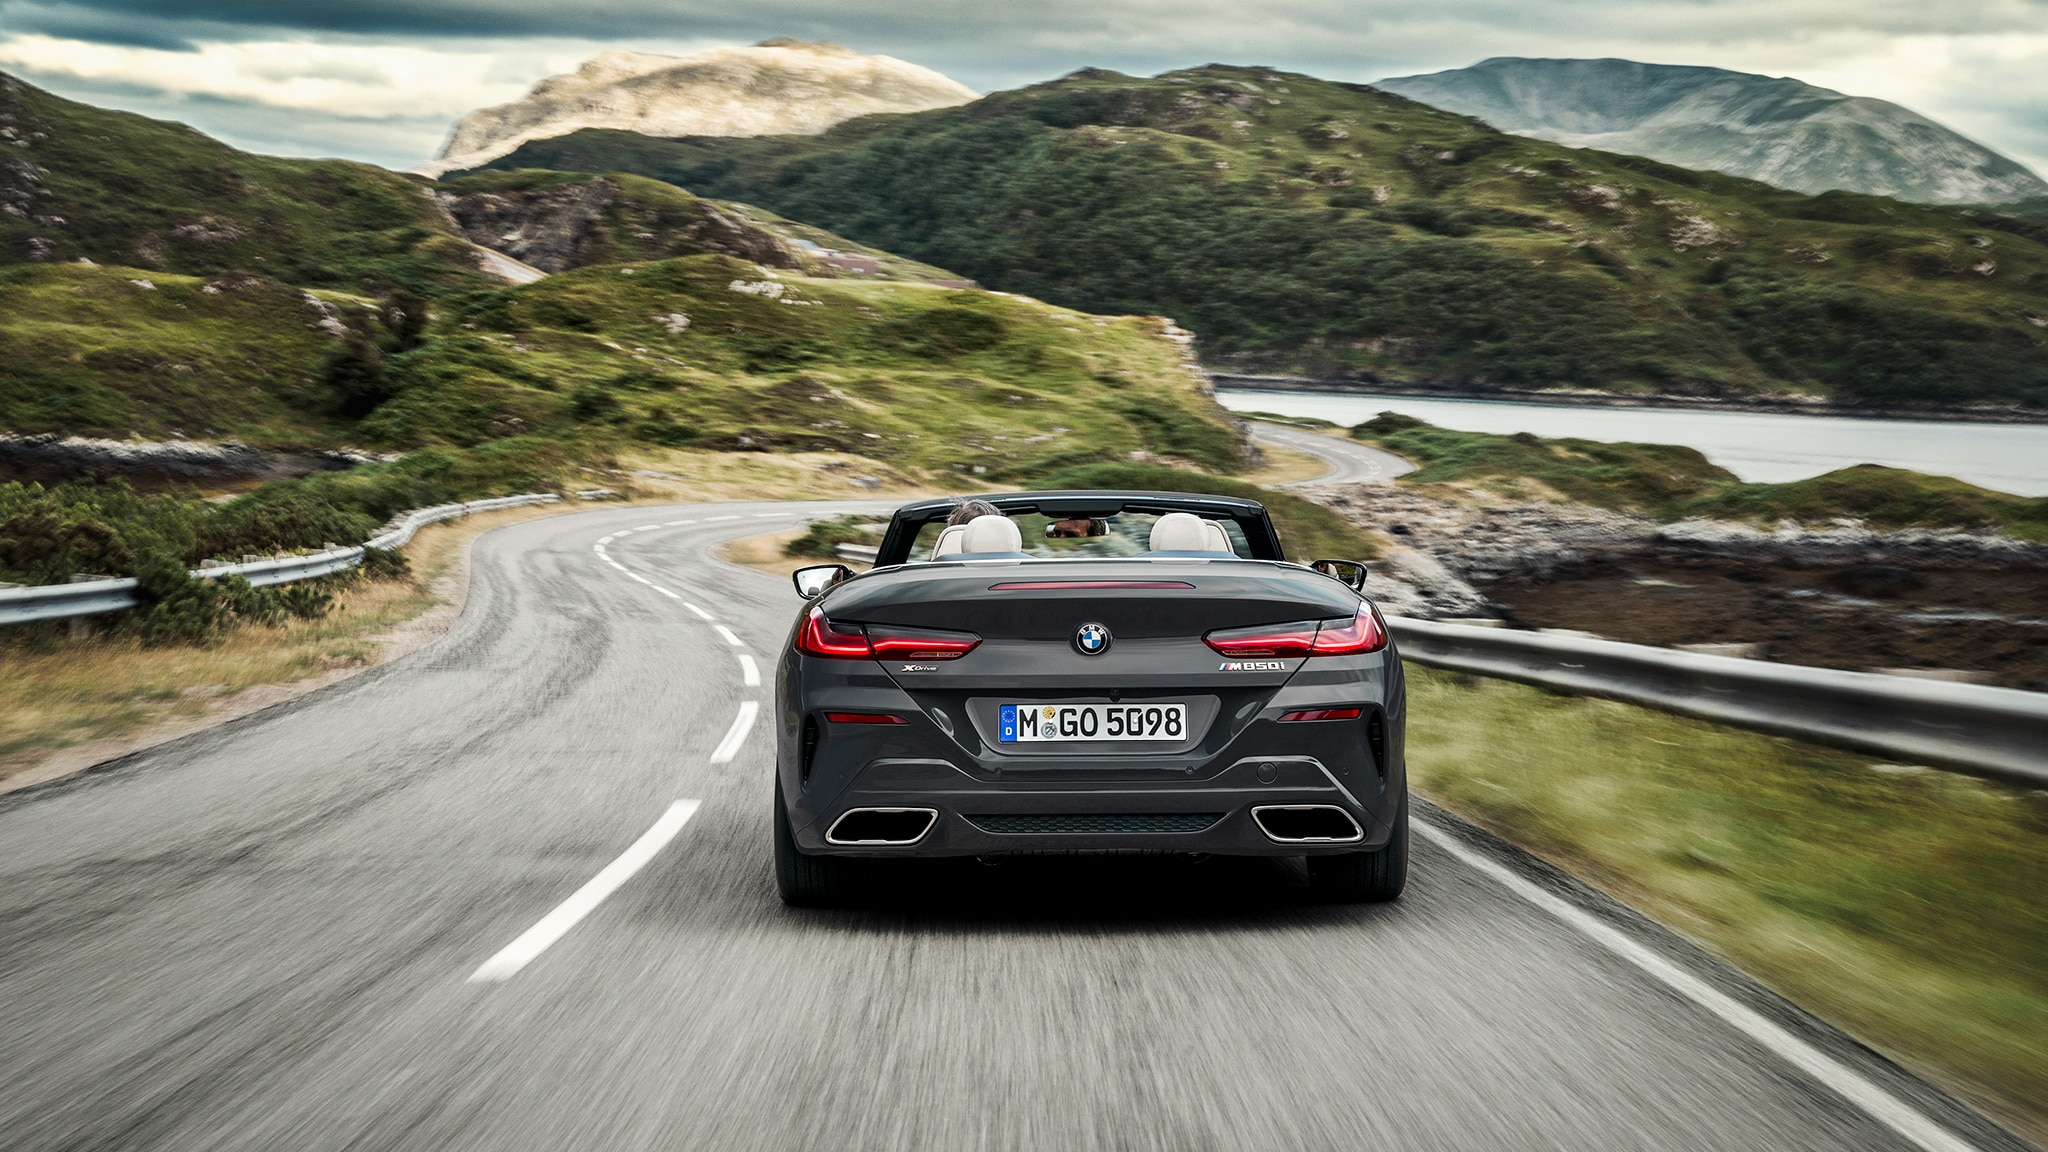 2019 BMW M850i Convertible Rear View On Road